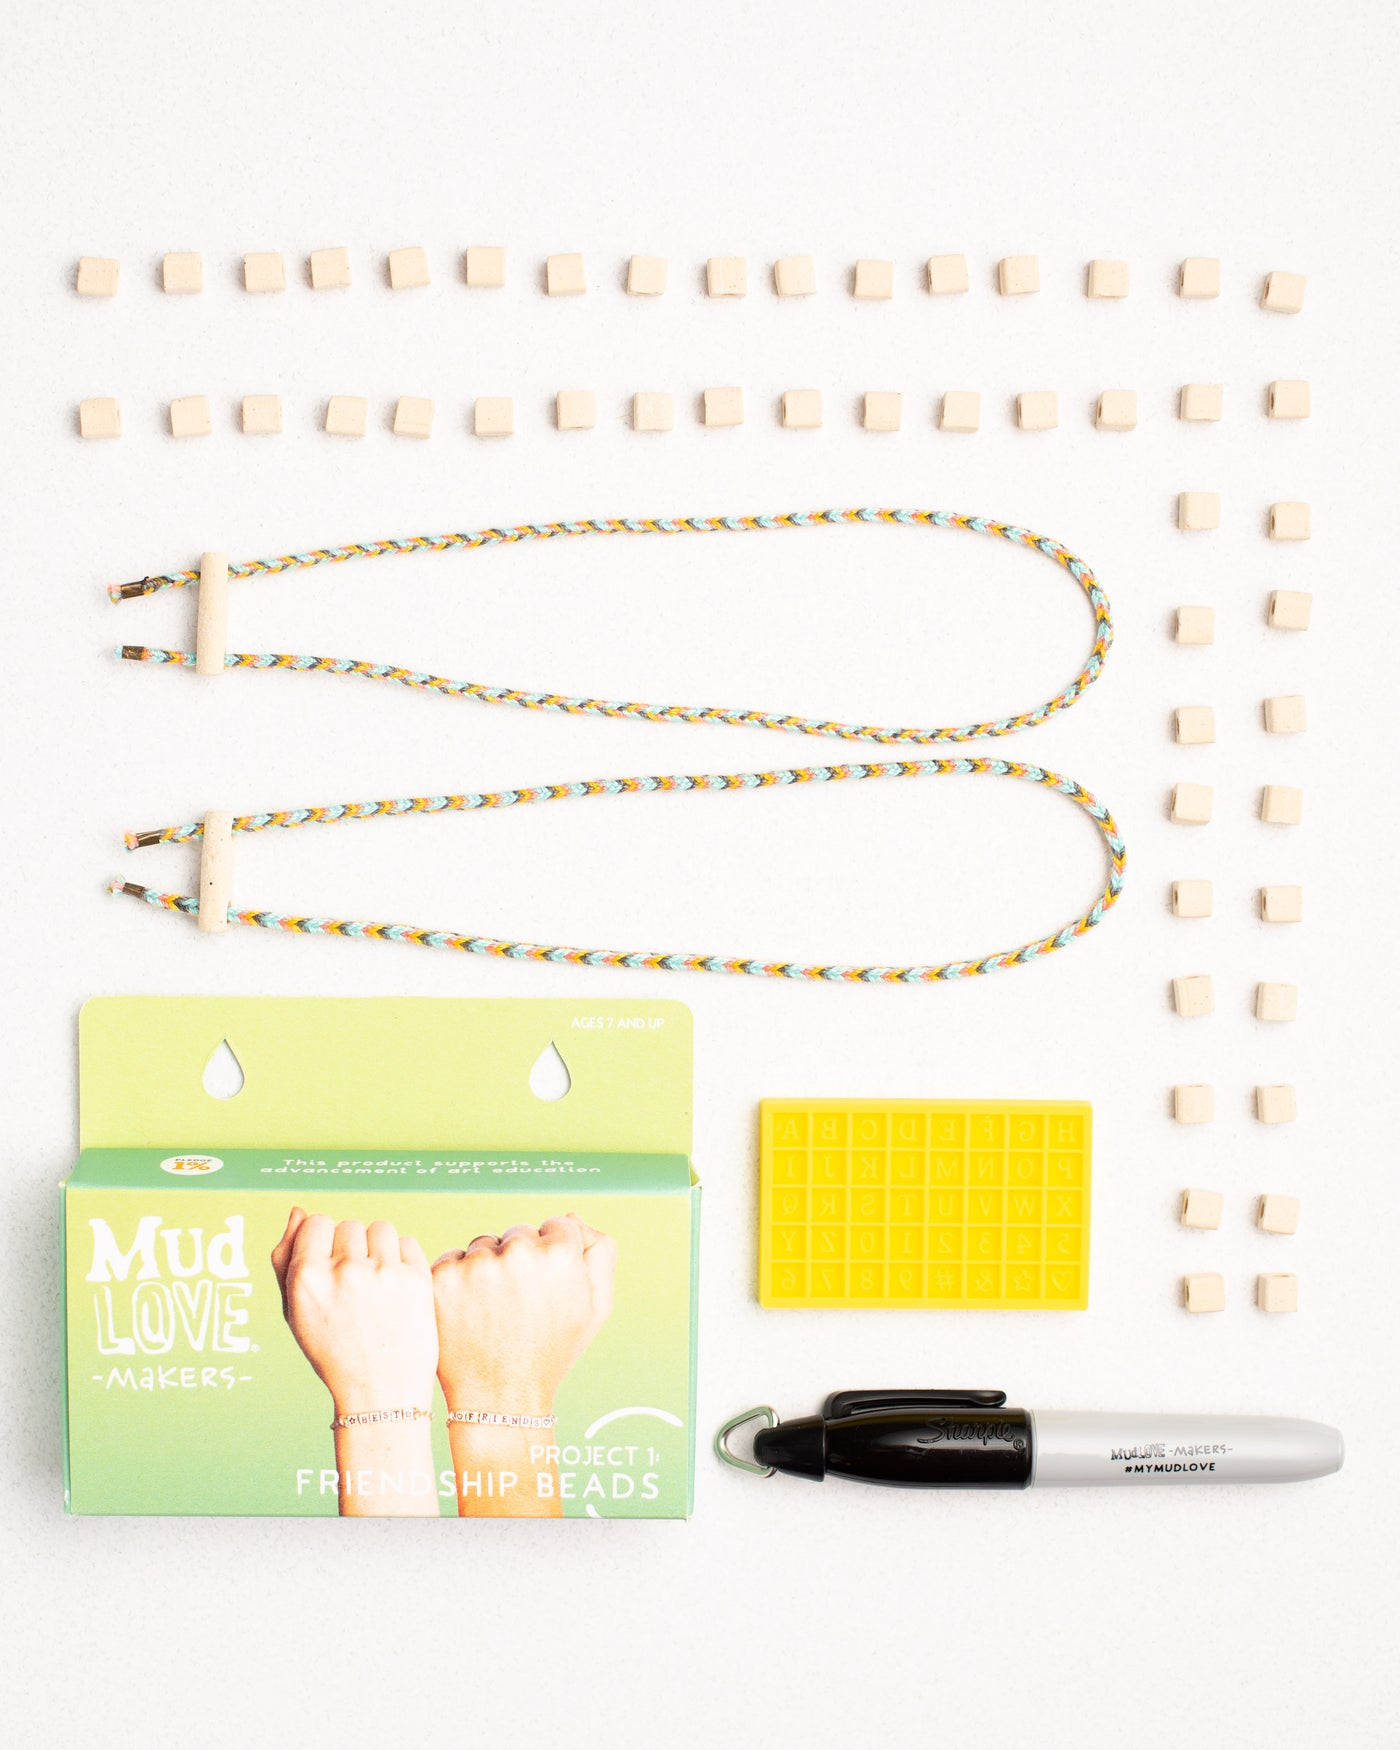 Makers Kit